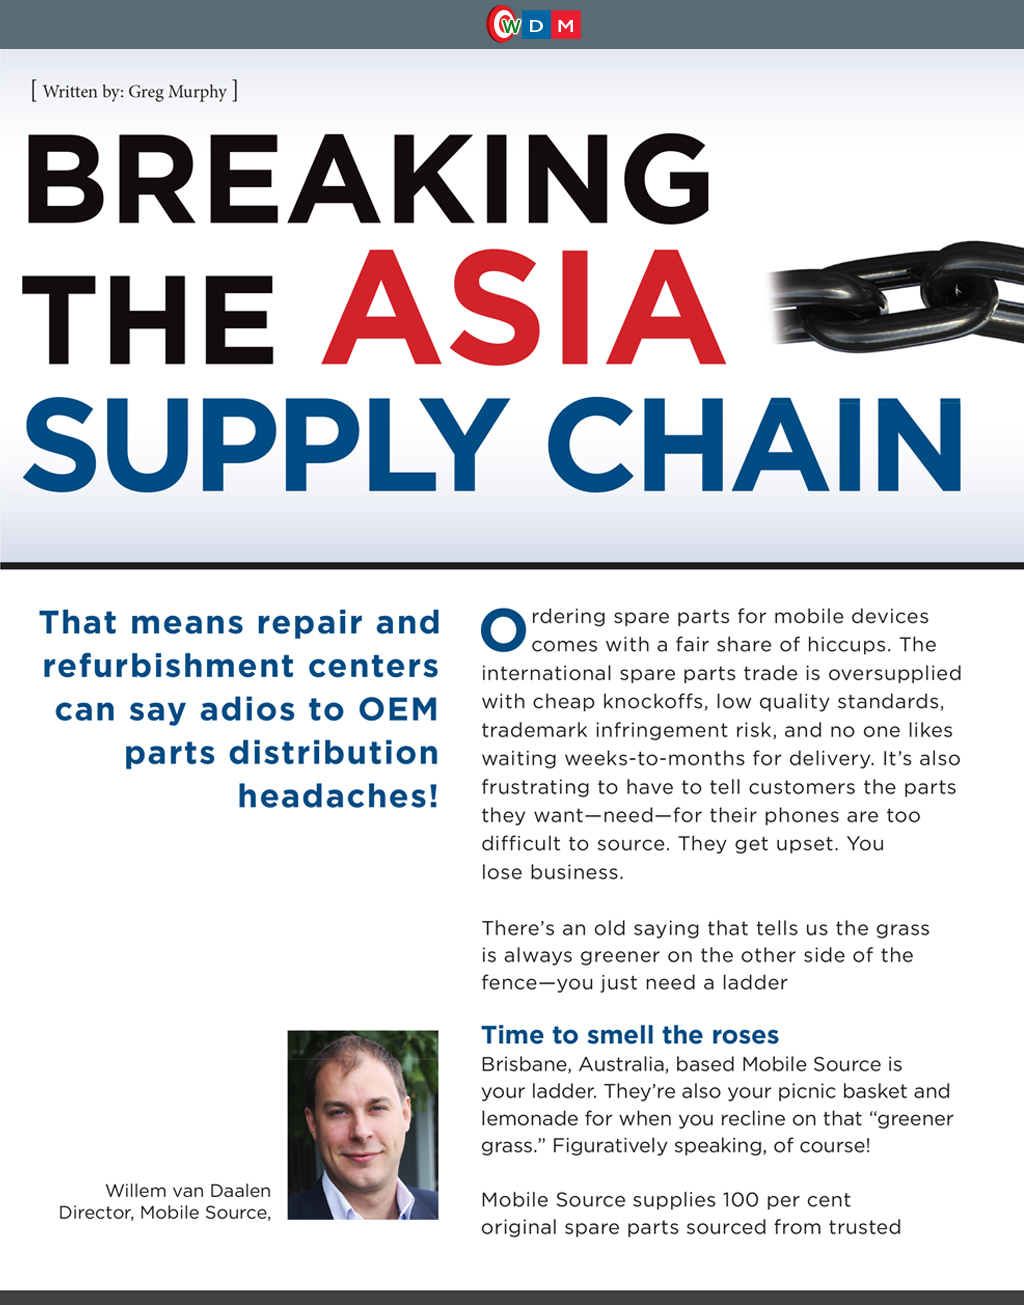 Breaking the Asia Supply Chain